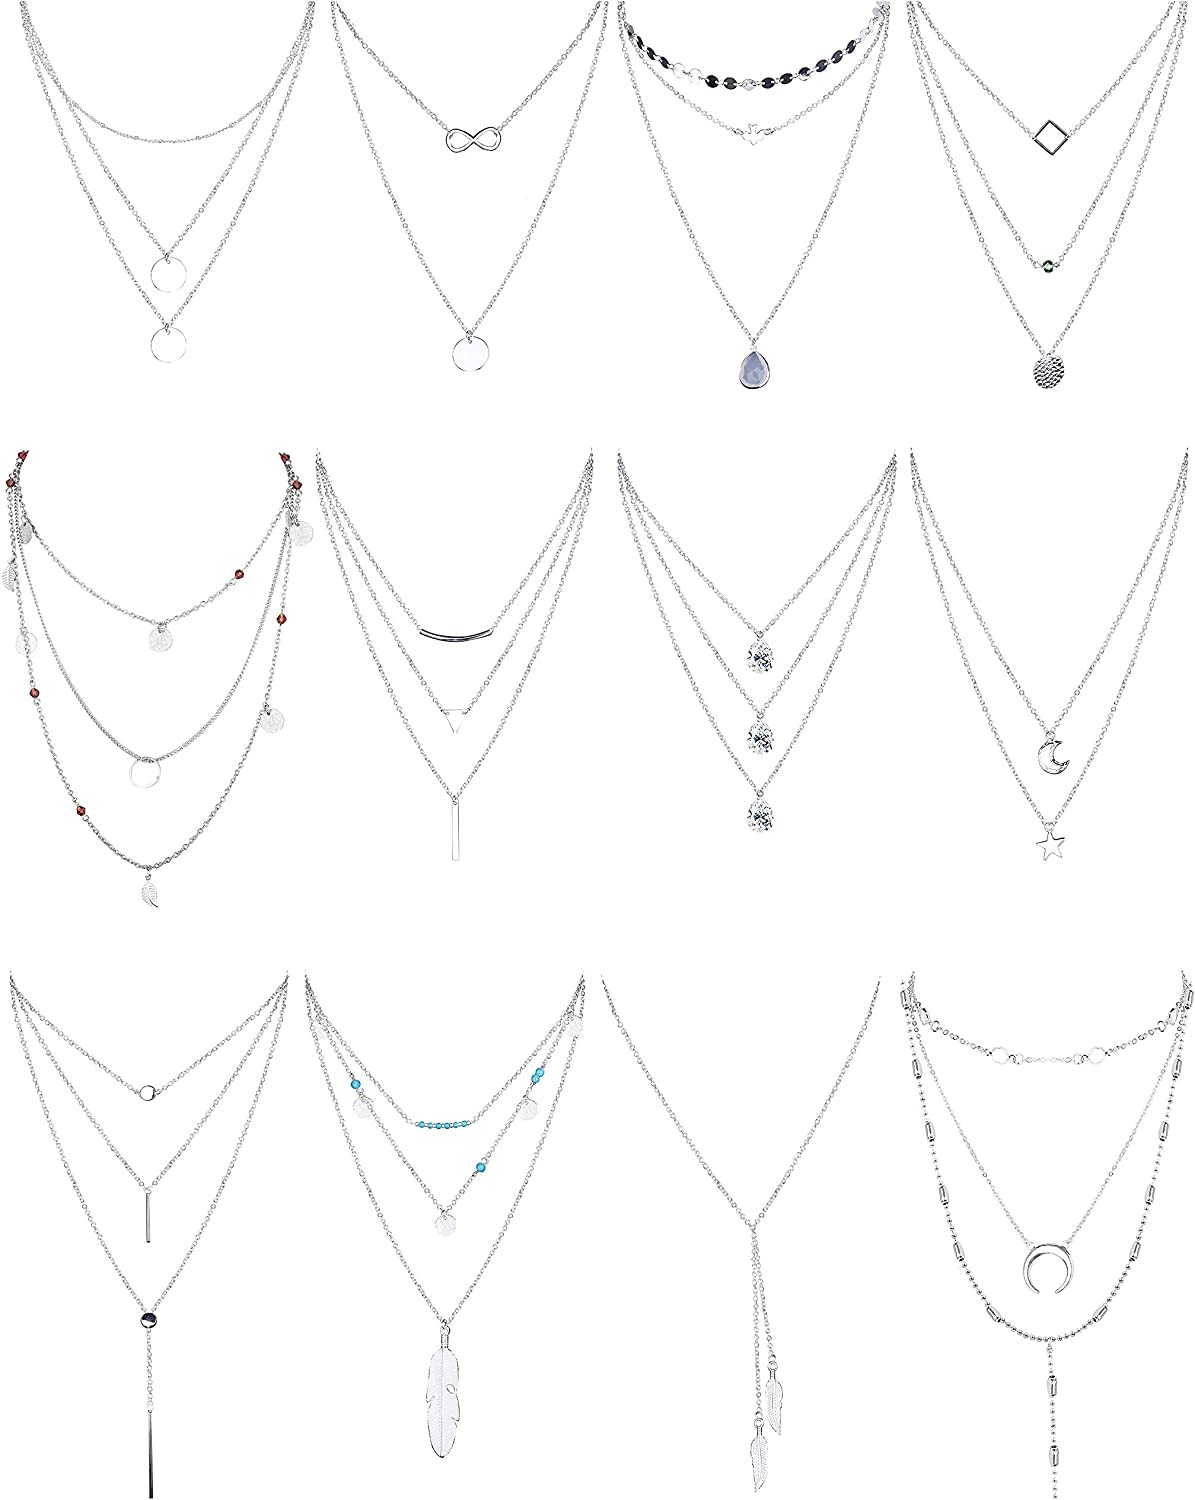 FINREZIO 12 PCS Gold Plated Layered Necklace for Women Girls Sexy Long Choker Chain Y Necklace Bar Feather Pendent Necklace Sets